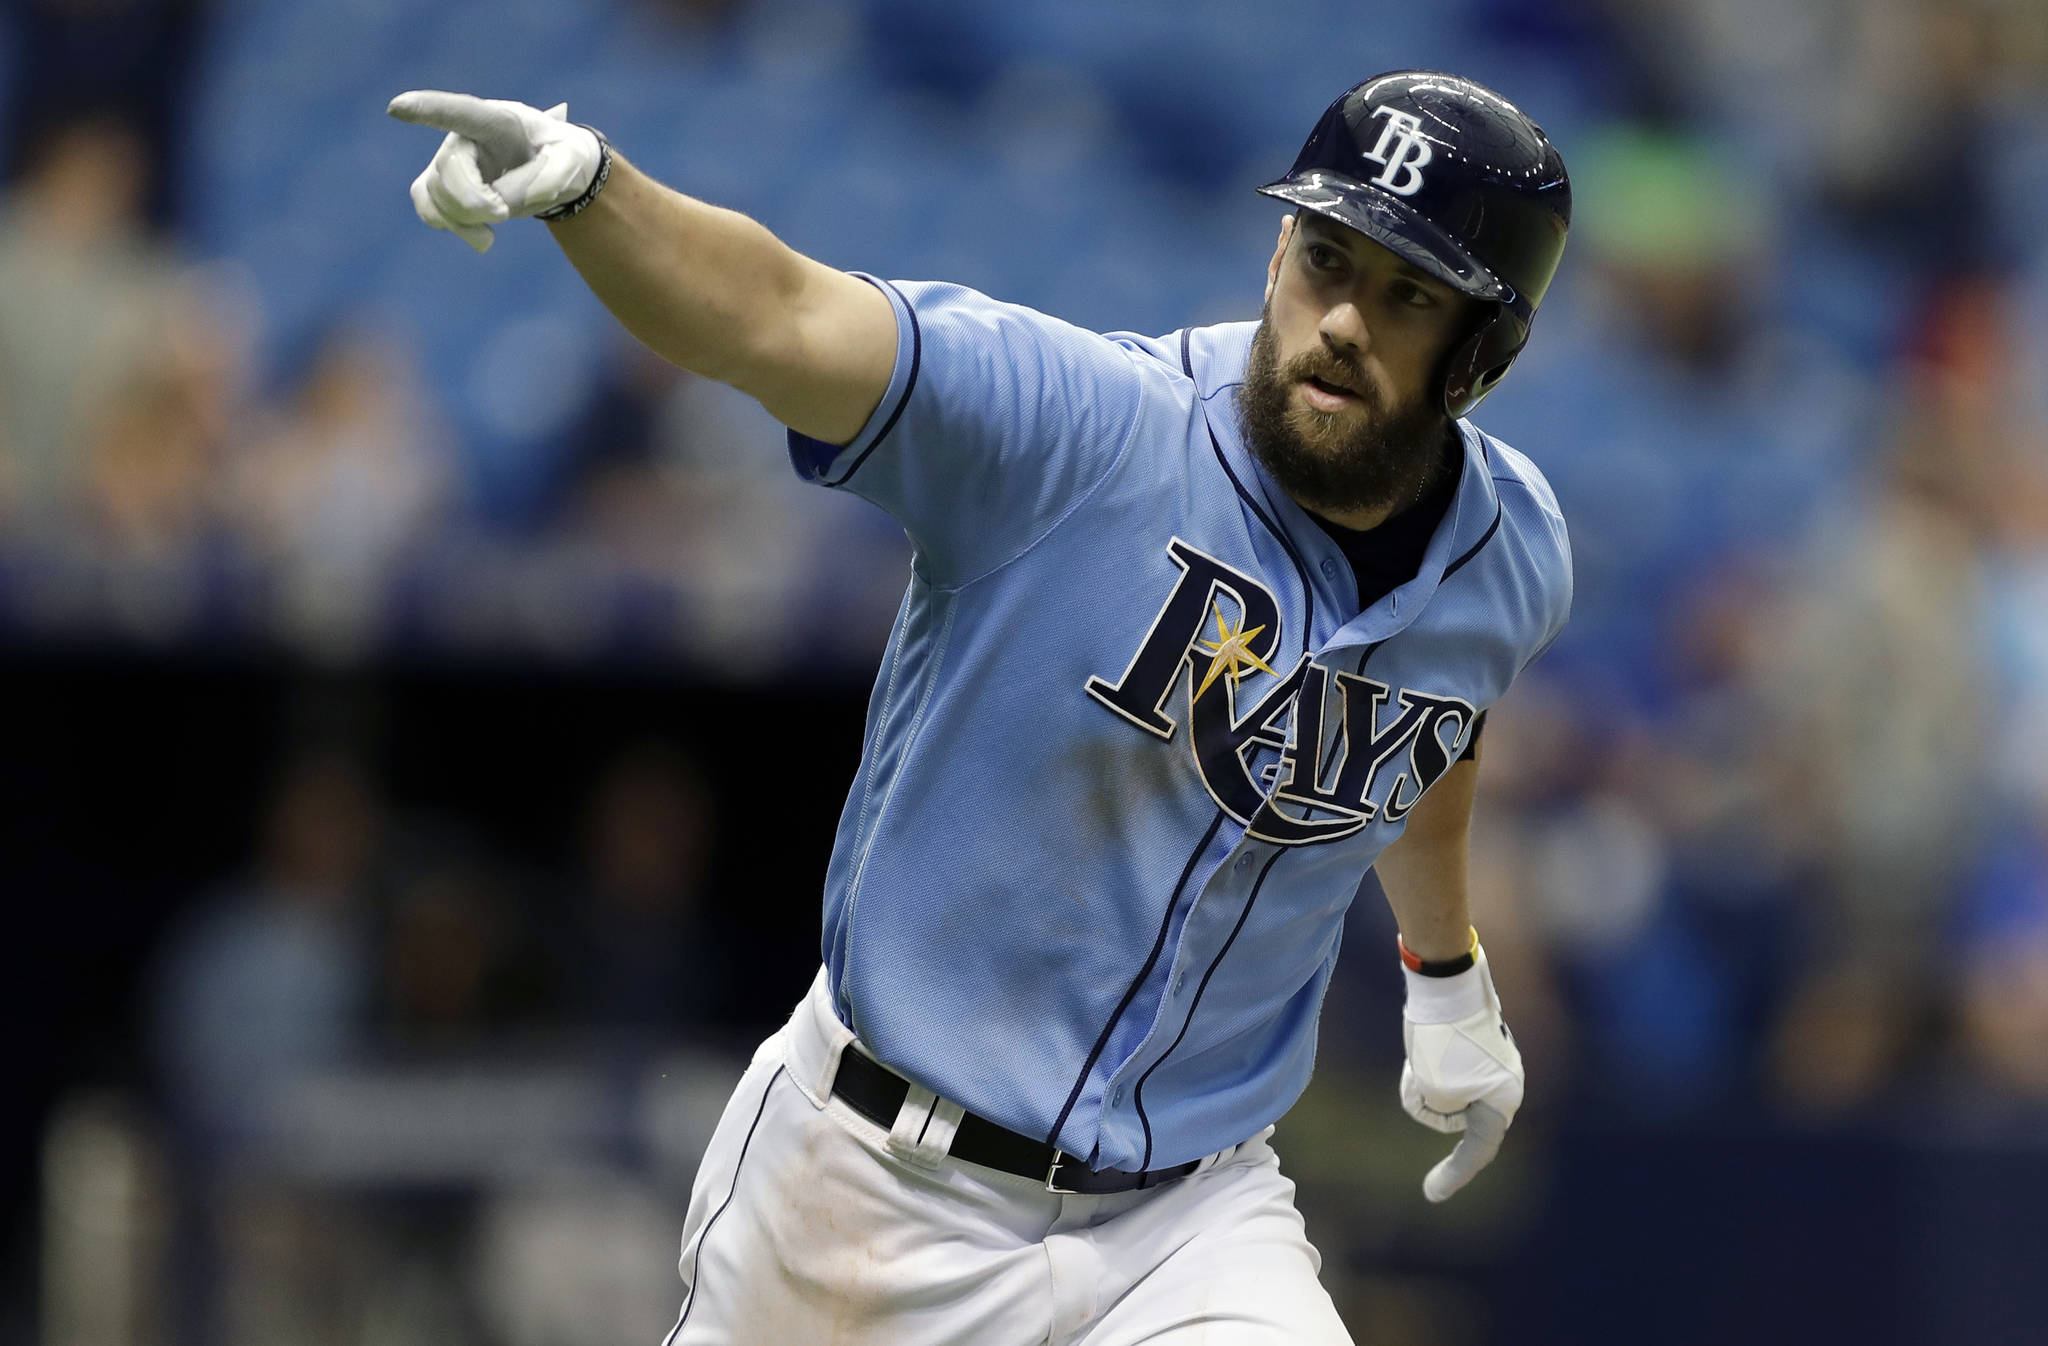 Tampa Bay Rays' Steven Souza Jr. celebrates after his walk off home run against Milwaukee Brewers relief pitcher Jacob Barnes during the ninth inning on Aug. 6, 2017. The Arizona Diamondbacks sent infielder Brandon Drury to the New York Yankees and received outfielder Steven Souza Jr. from the Rays in a three-team trade that includes five players, Tuesday, Feb. 20, 2018. (AP Photo/Chris O'Meara, File)